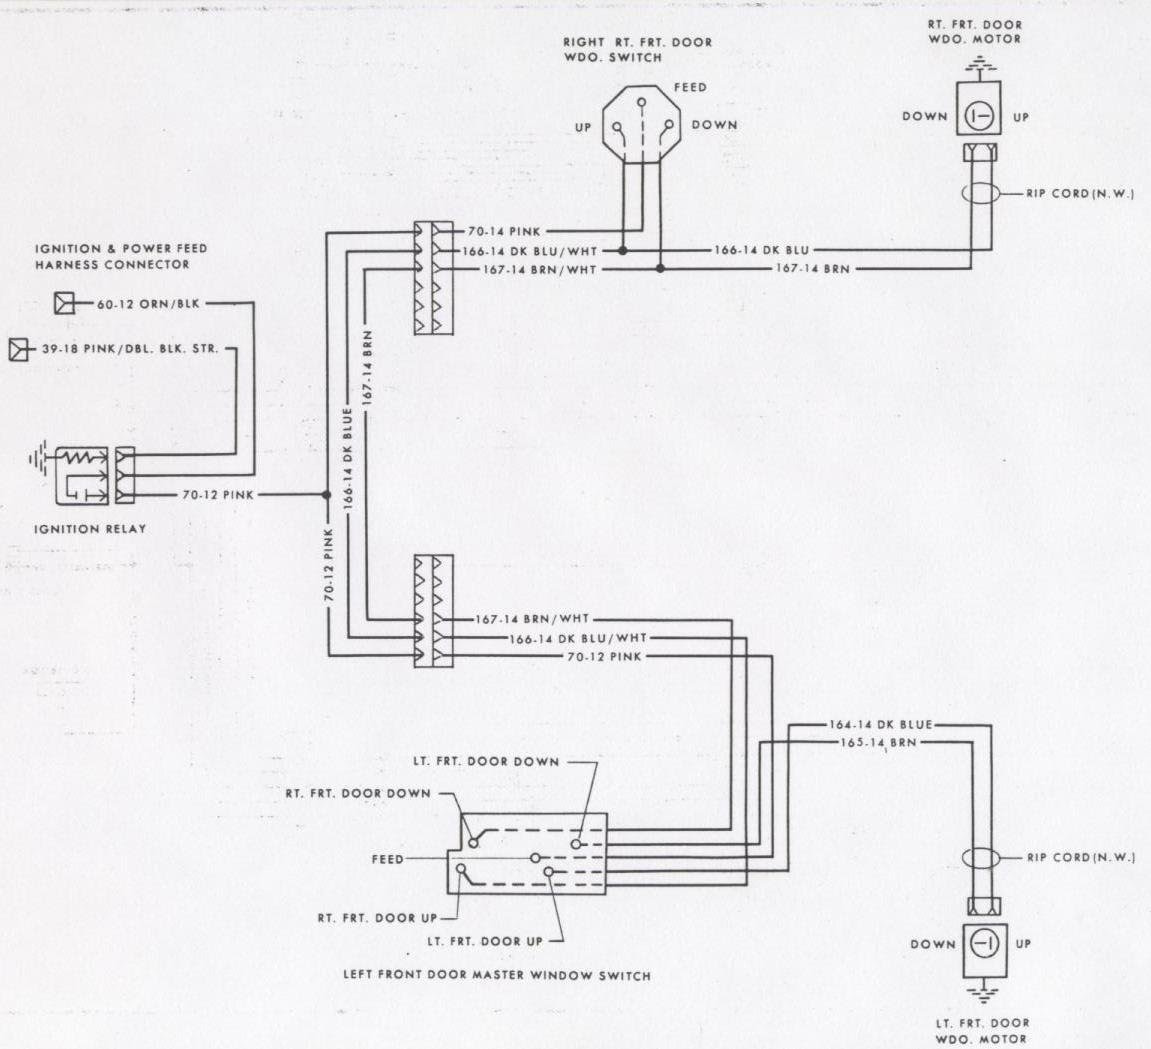 Camaro Wiring Diagrams Electrical Information Troubleshooting Diagnostics Restoration